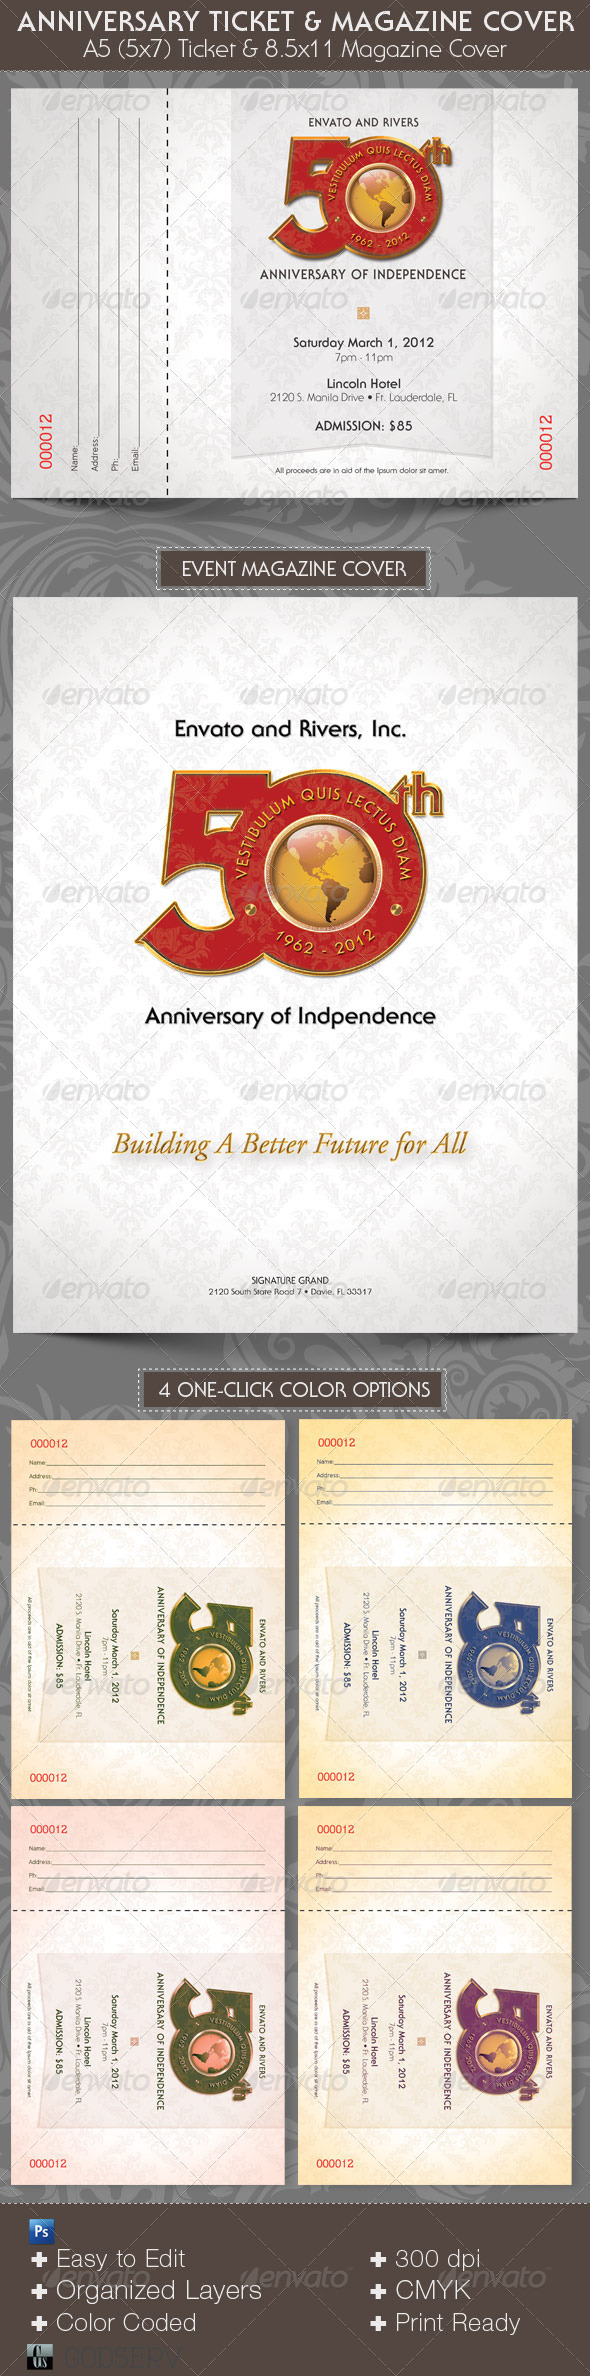 Anniversary Event Ticket Plus Magazine Cover Template - Miscellaneous Print Templates